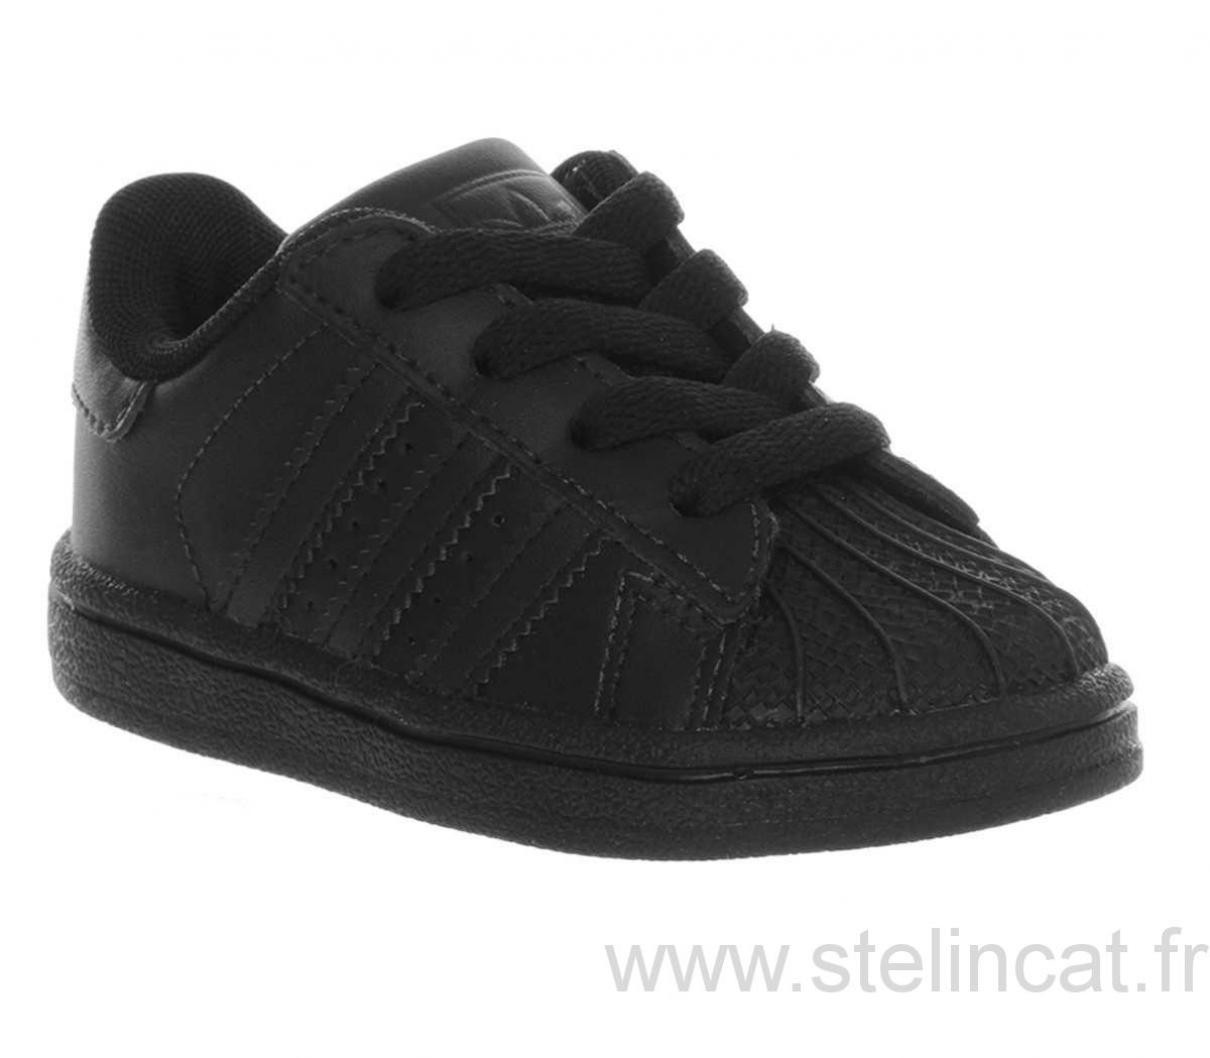 Adidas Chaussures Taille:28,29,30,31,32,33,34,35 France